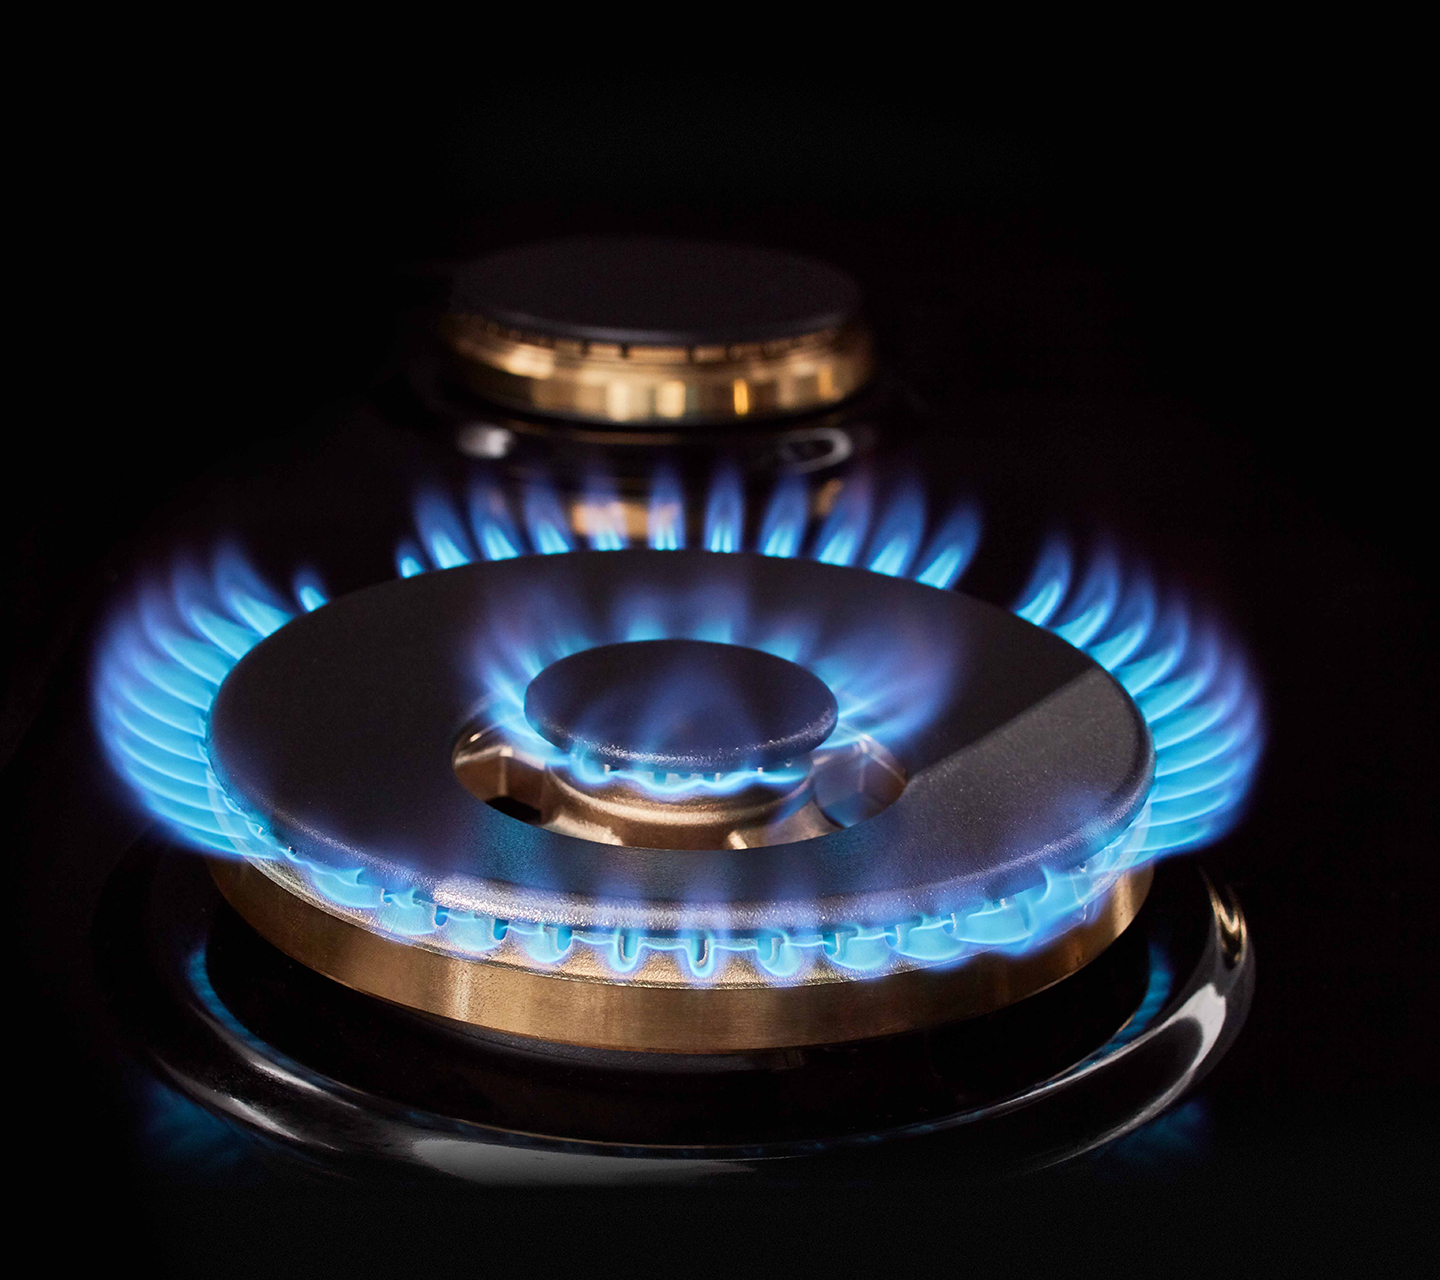 Power-up Simmer Down Extra High and Ultra Low Burner on Dual Fuel Pro Range